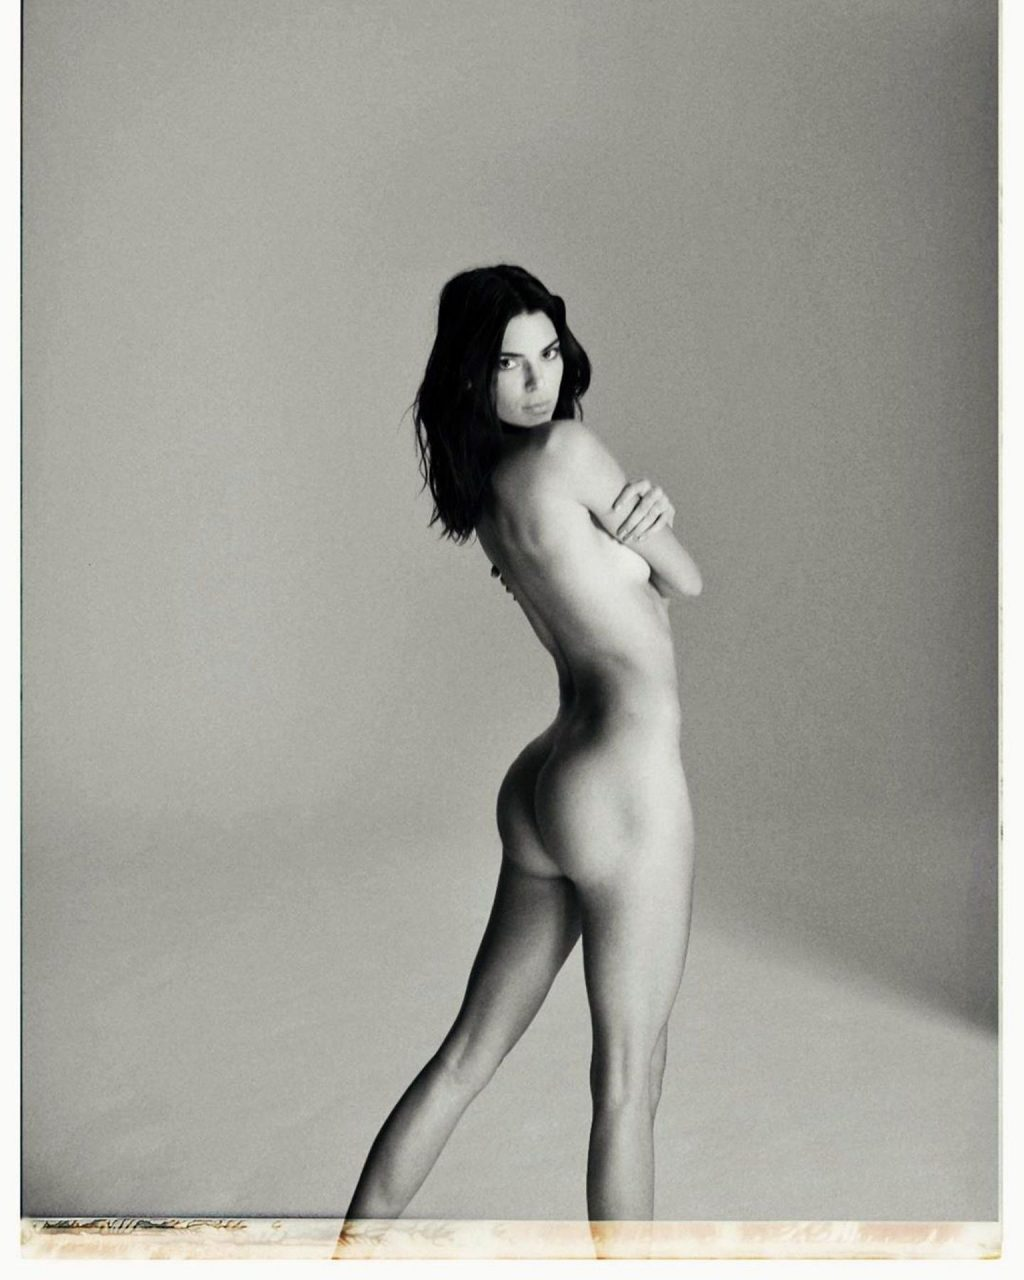 Kendall Jenner (1 Nude Photo)